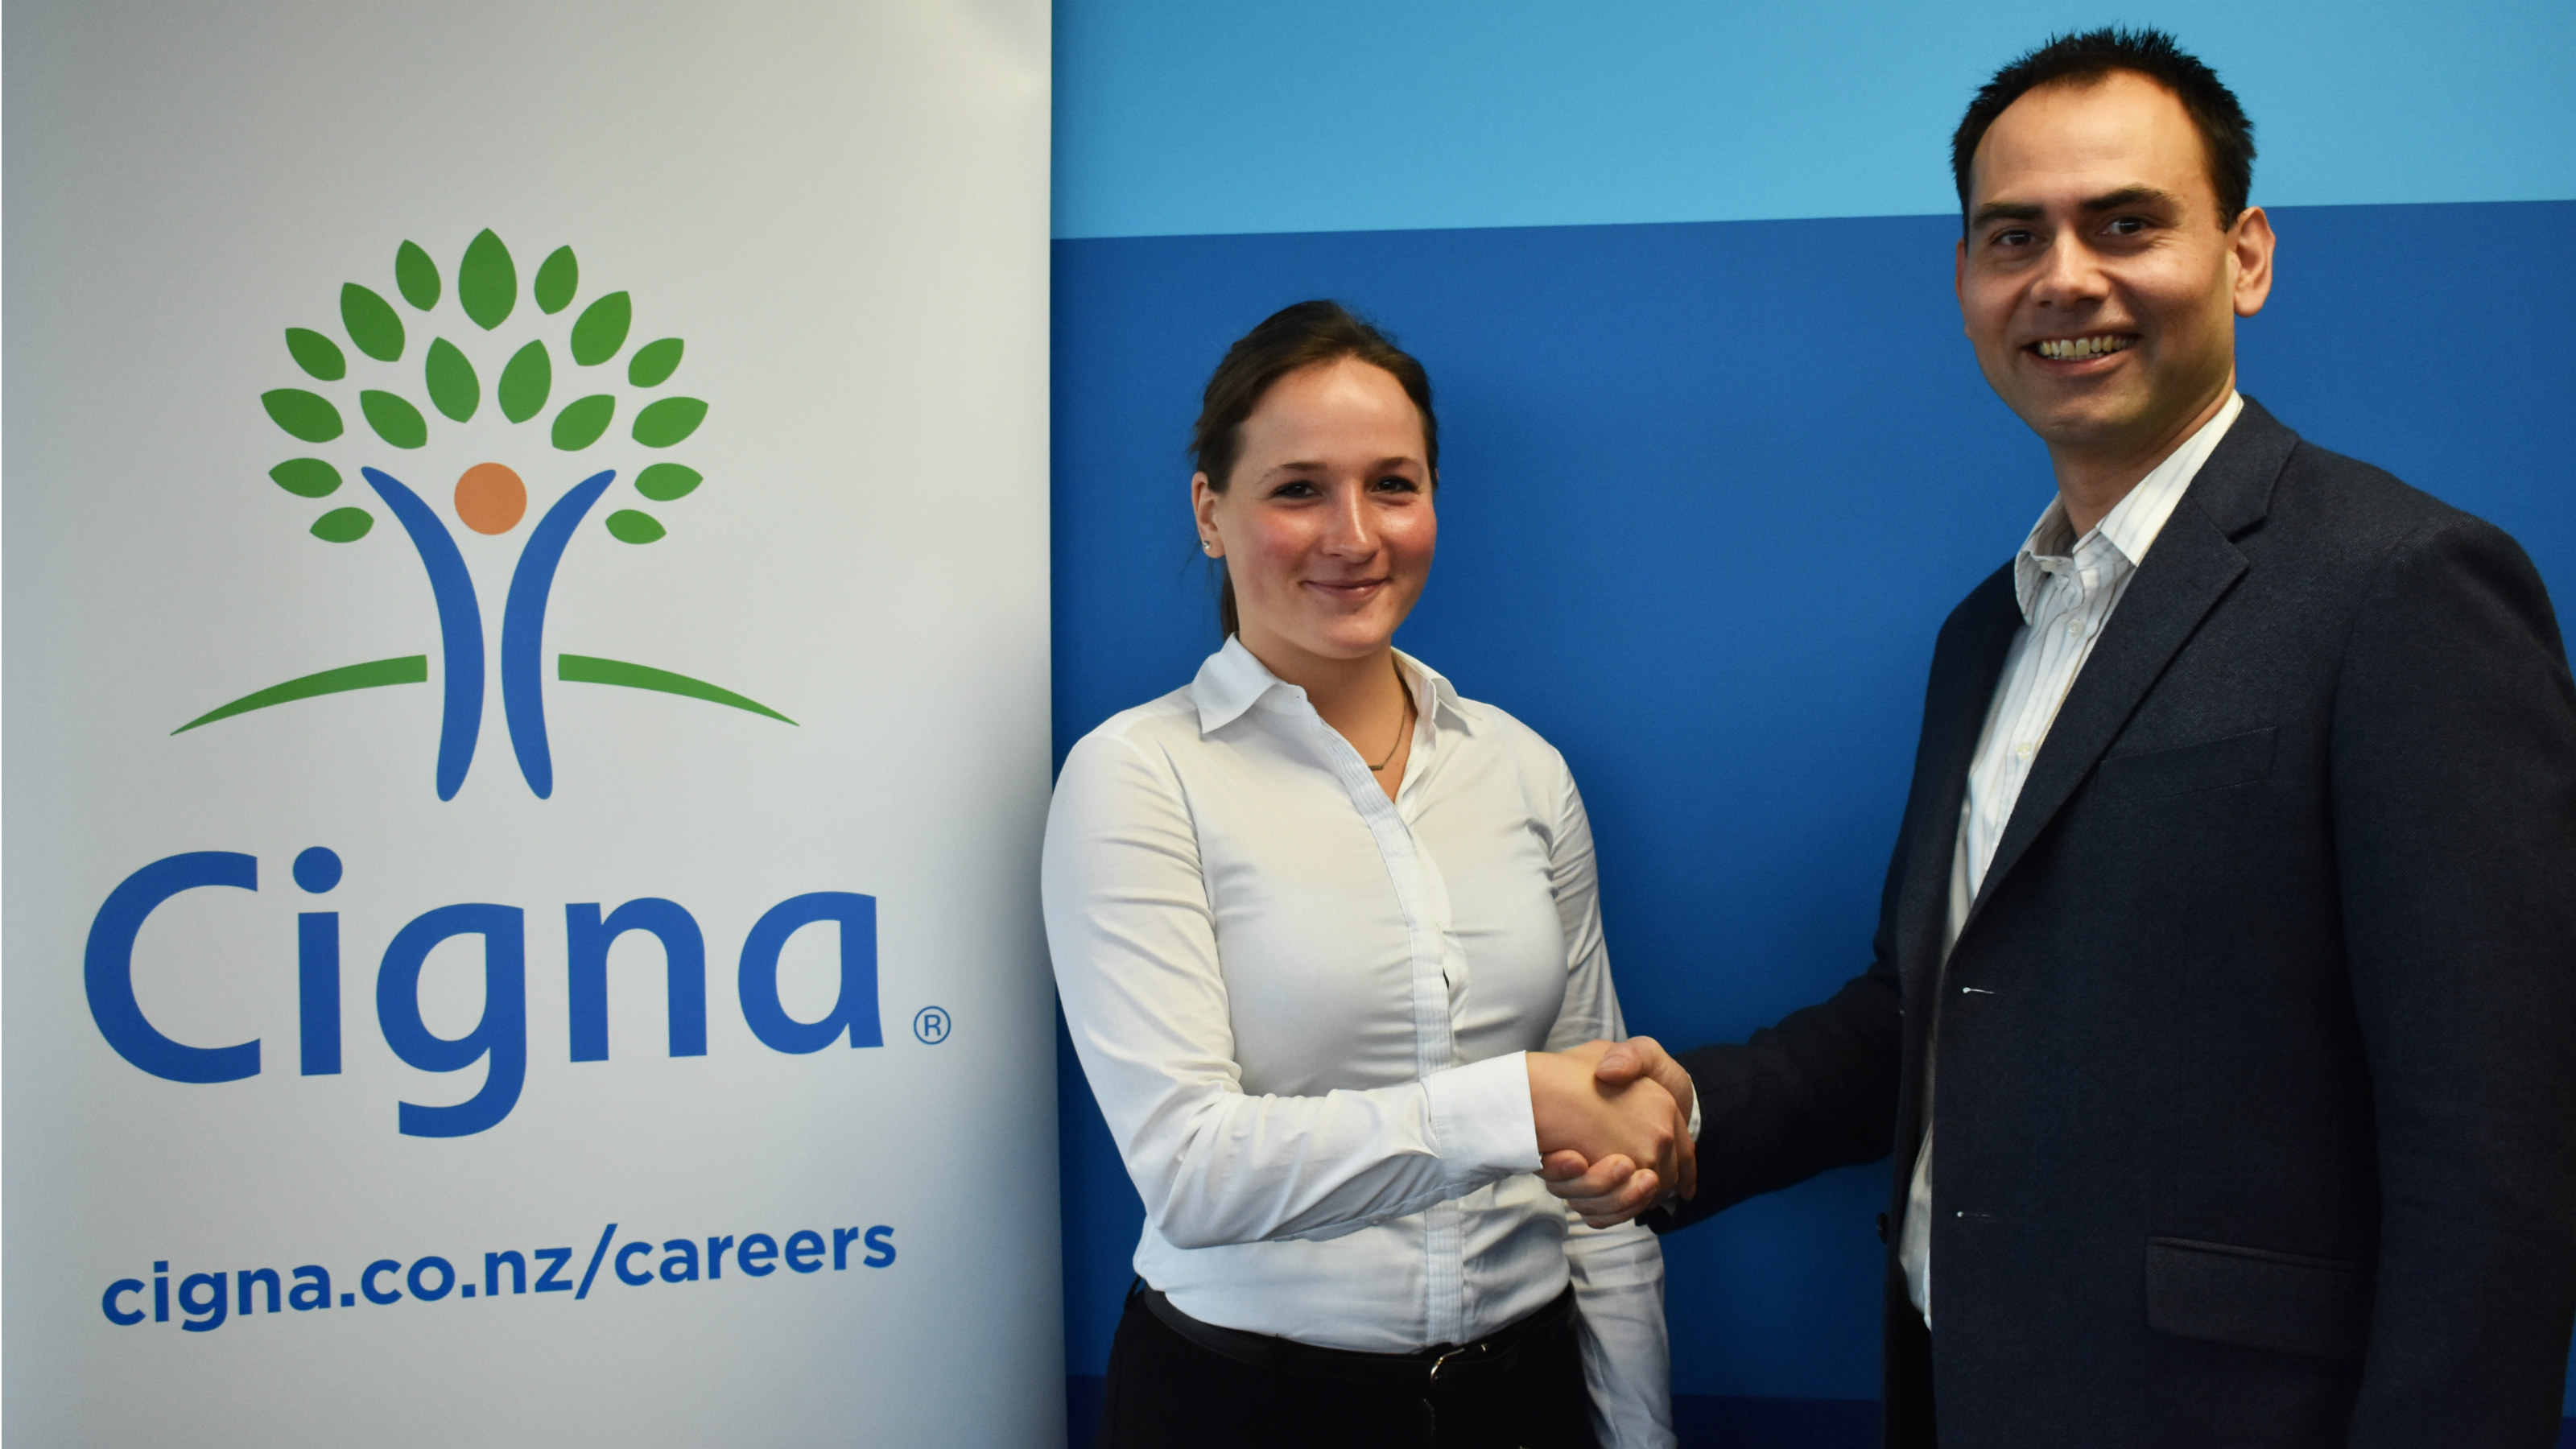 Cigna 2018 actuarial scholarship recipient, Clarissa Nowak, with Nathan Thomas, Head of Customer Propositions and Value at Cigna.